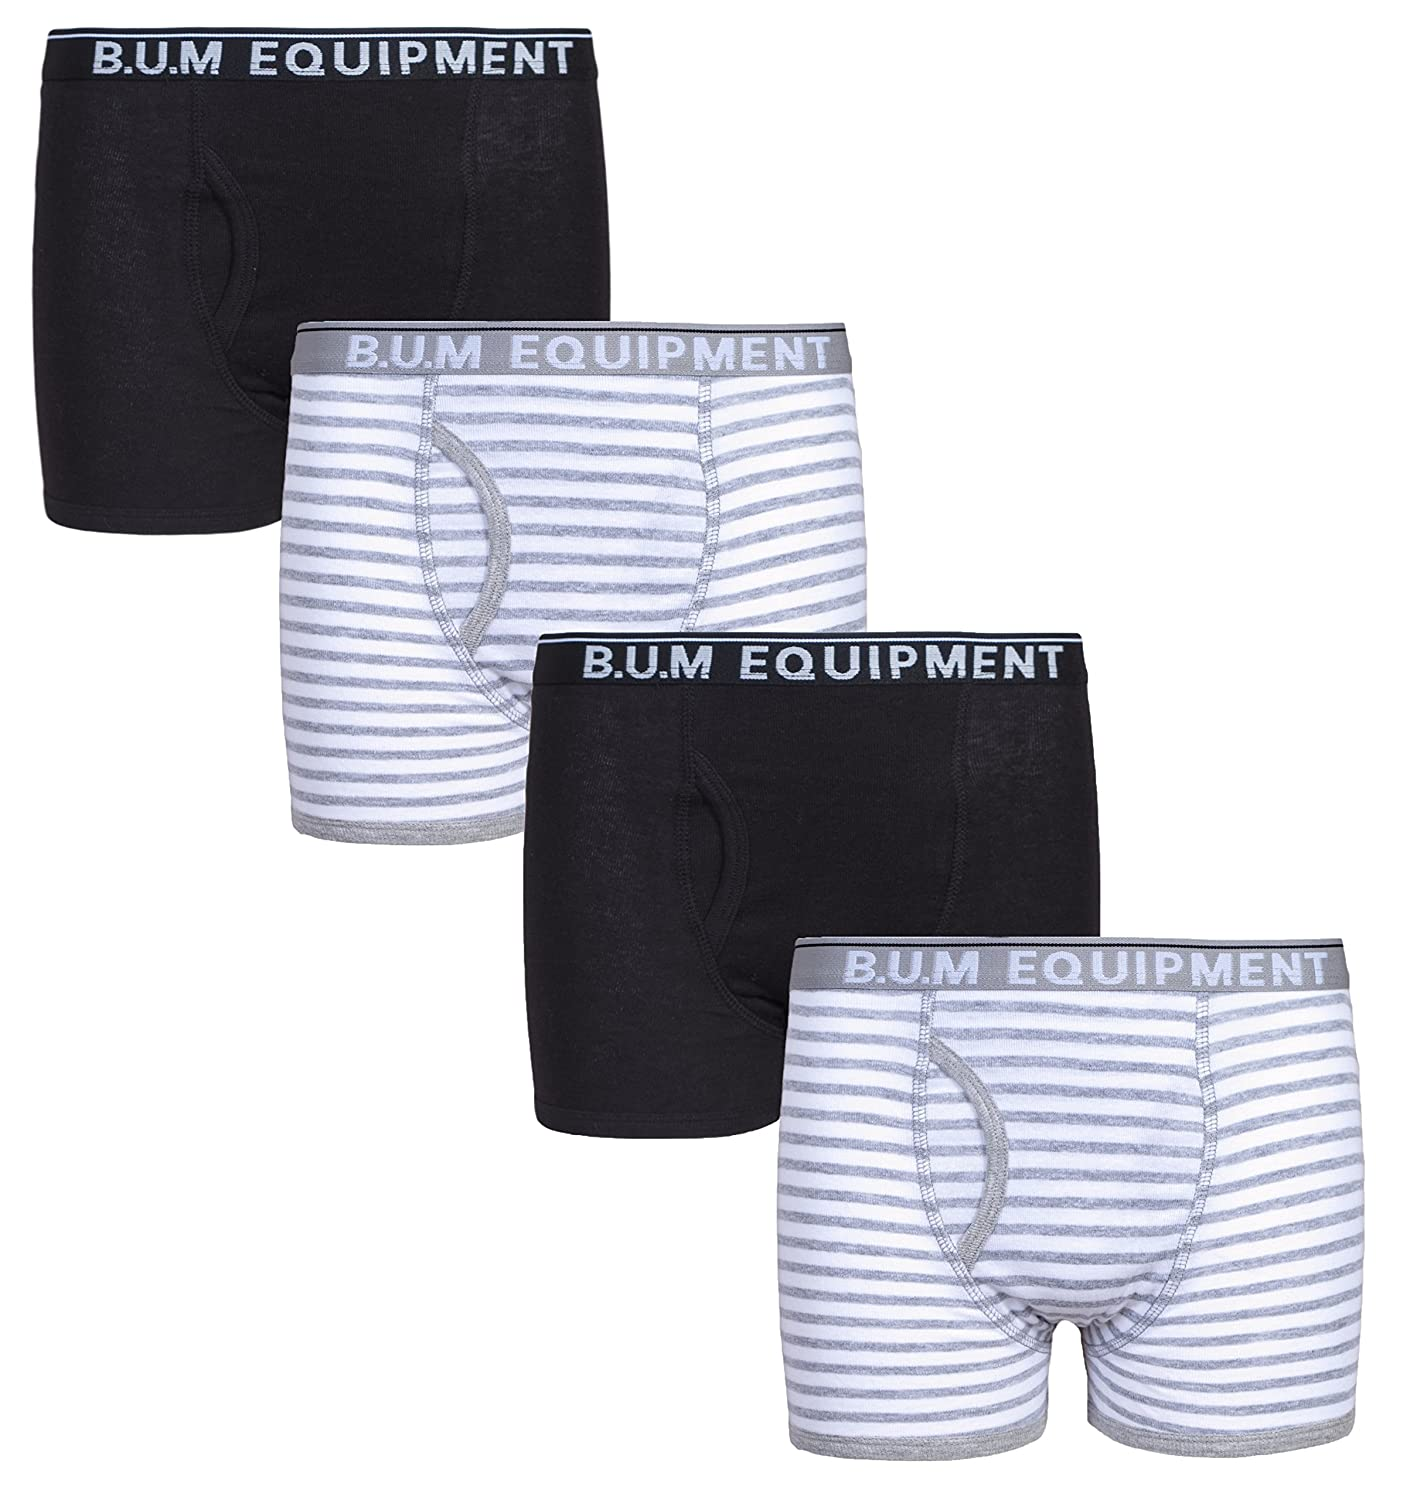 B.U.M. Equipment Boys 4 Pack Underwear Boxer Briefs, Solids and Stripes